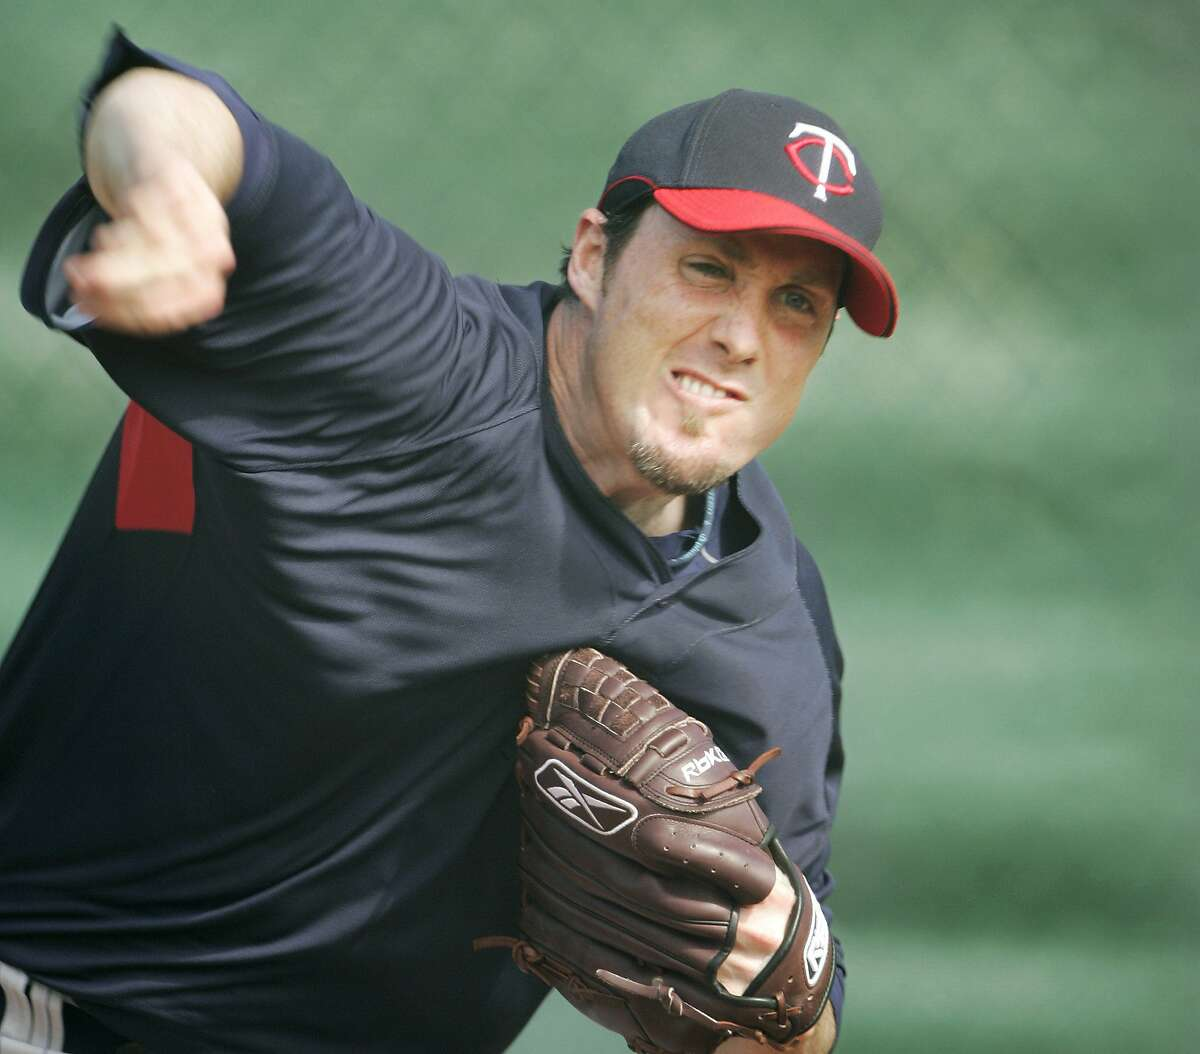 Minnesota Twins pitcher Joe Nathan follows through while working out in the bullpen at the teams baseball spring training facility, in Fort Myers, Fla., Wednesday, Feb. 20, 2008. (AP Photo/Steven Senne)